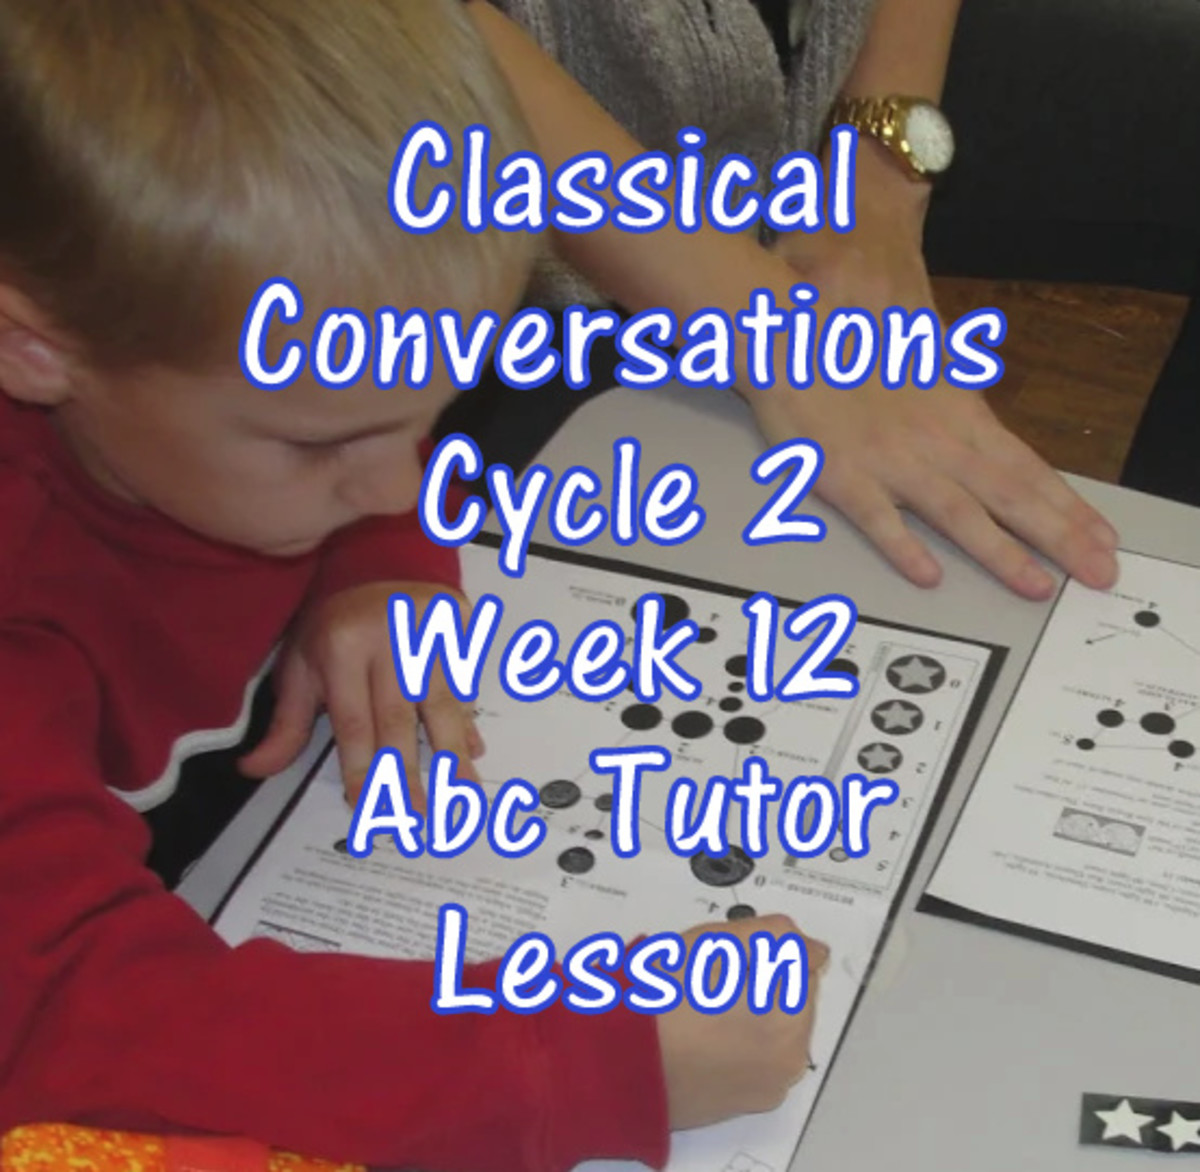 CC Cycle 2 Week 12 Lesson for Abecedarian Tutors